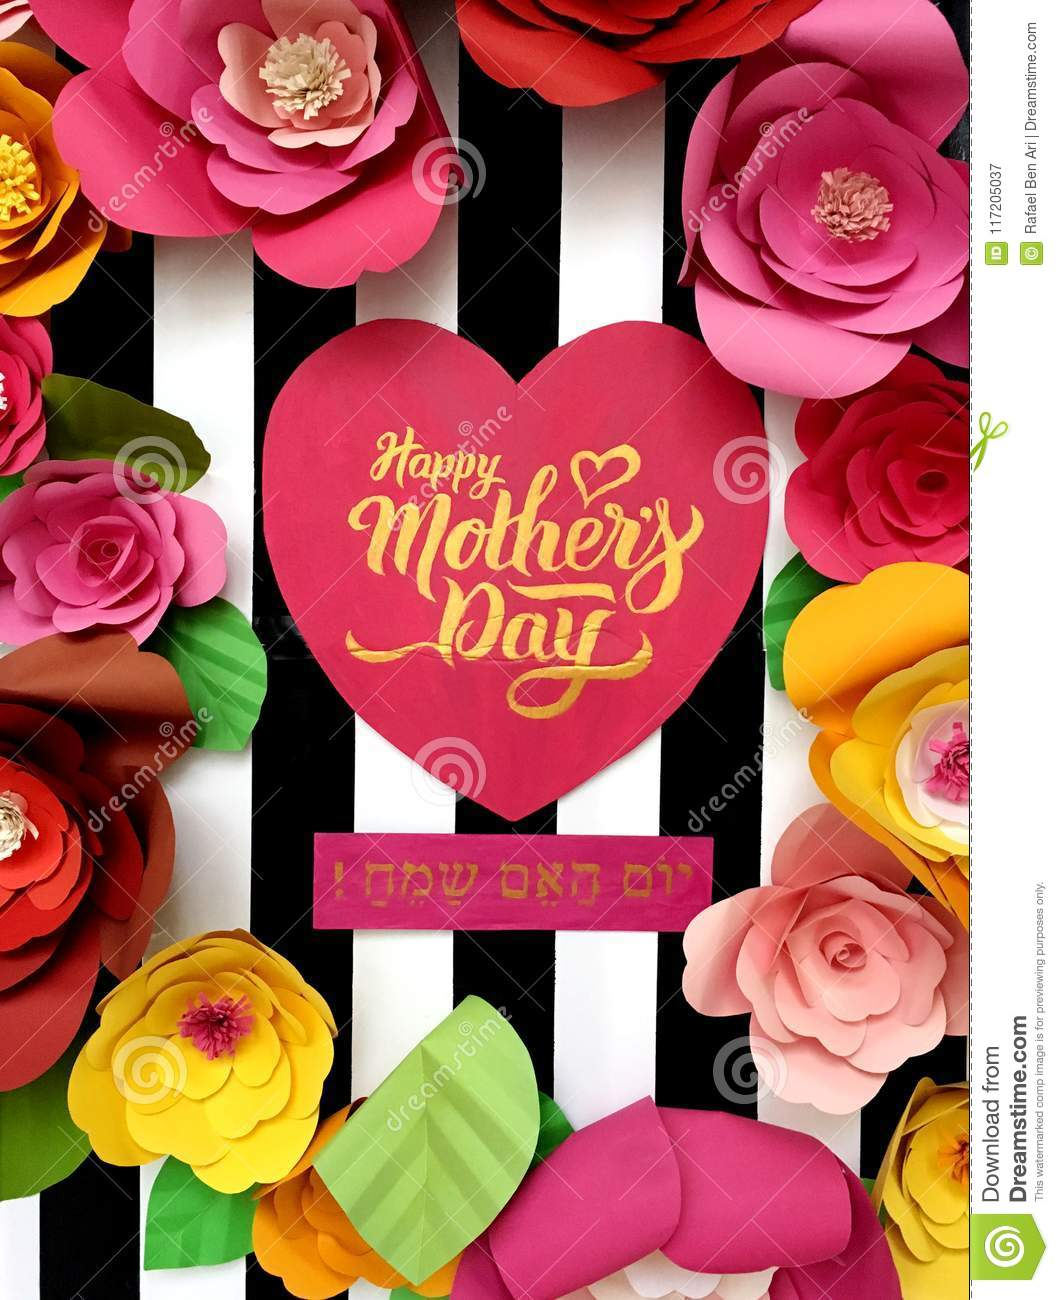 Mothers Day Poster Card Decorated With Flowers And Hart Stock Image ...